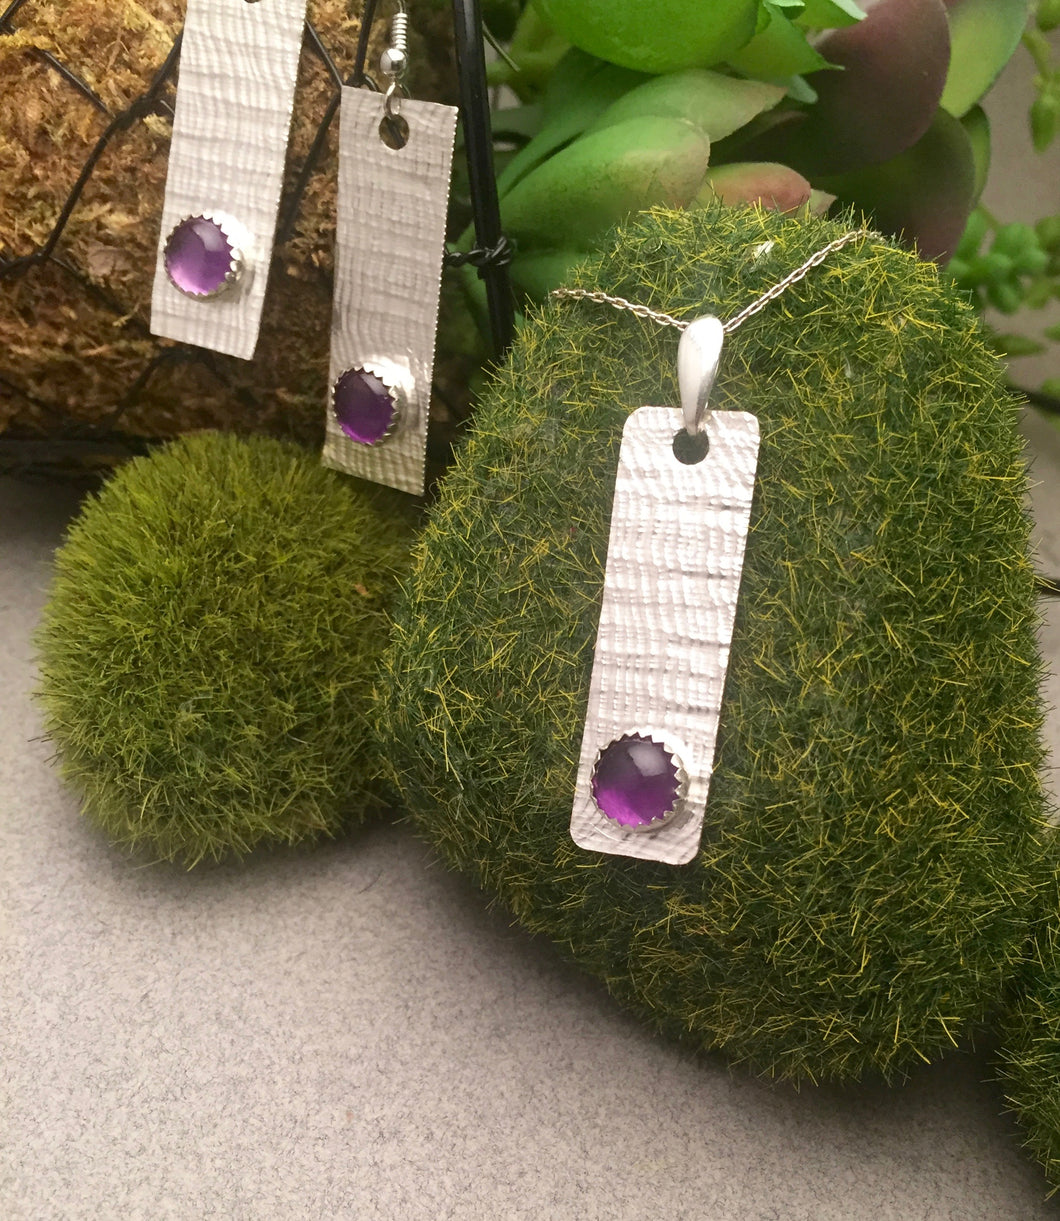 8mm Amethyst on Textured Backplate Pendant